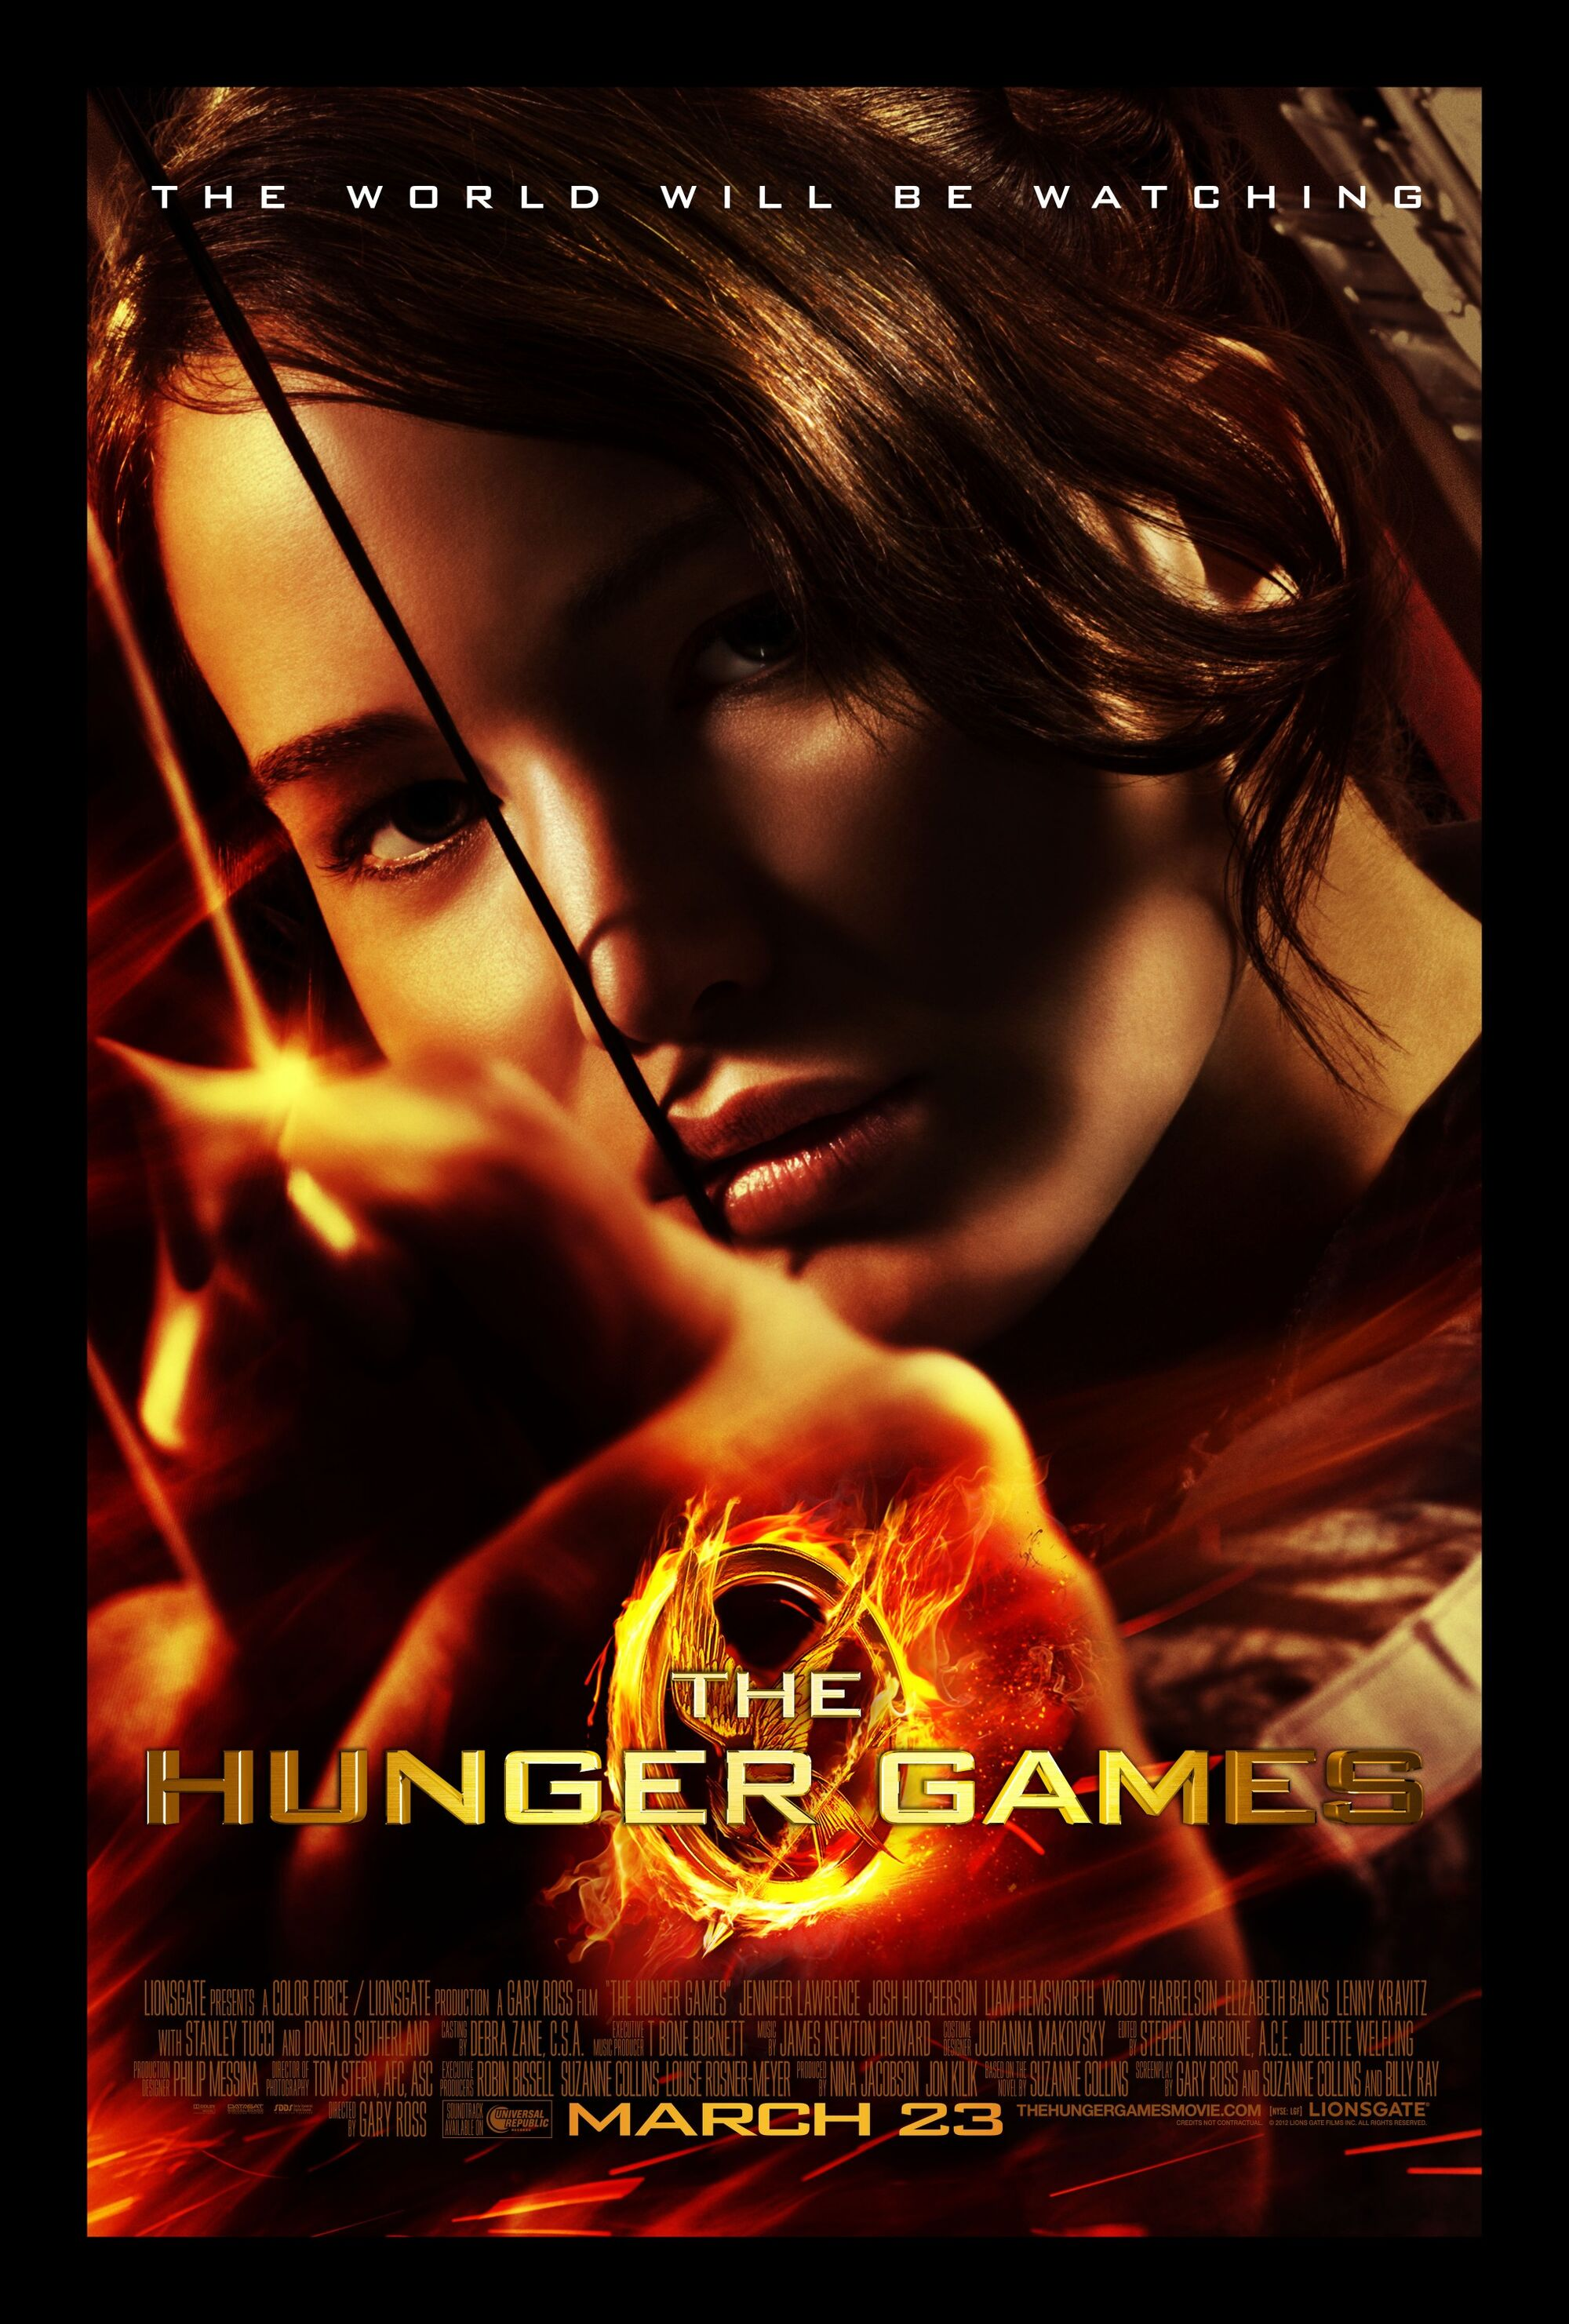 the hunger games book to film differences the hunger games wiki the hunger games book to film differences the hunger games wiki fandom powered by wikia